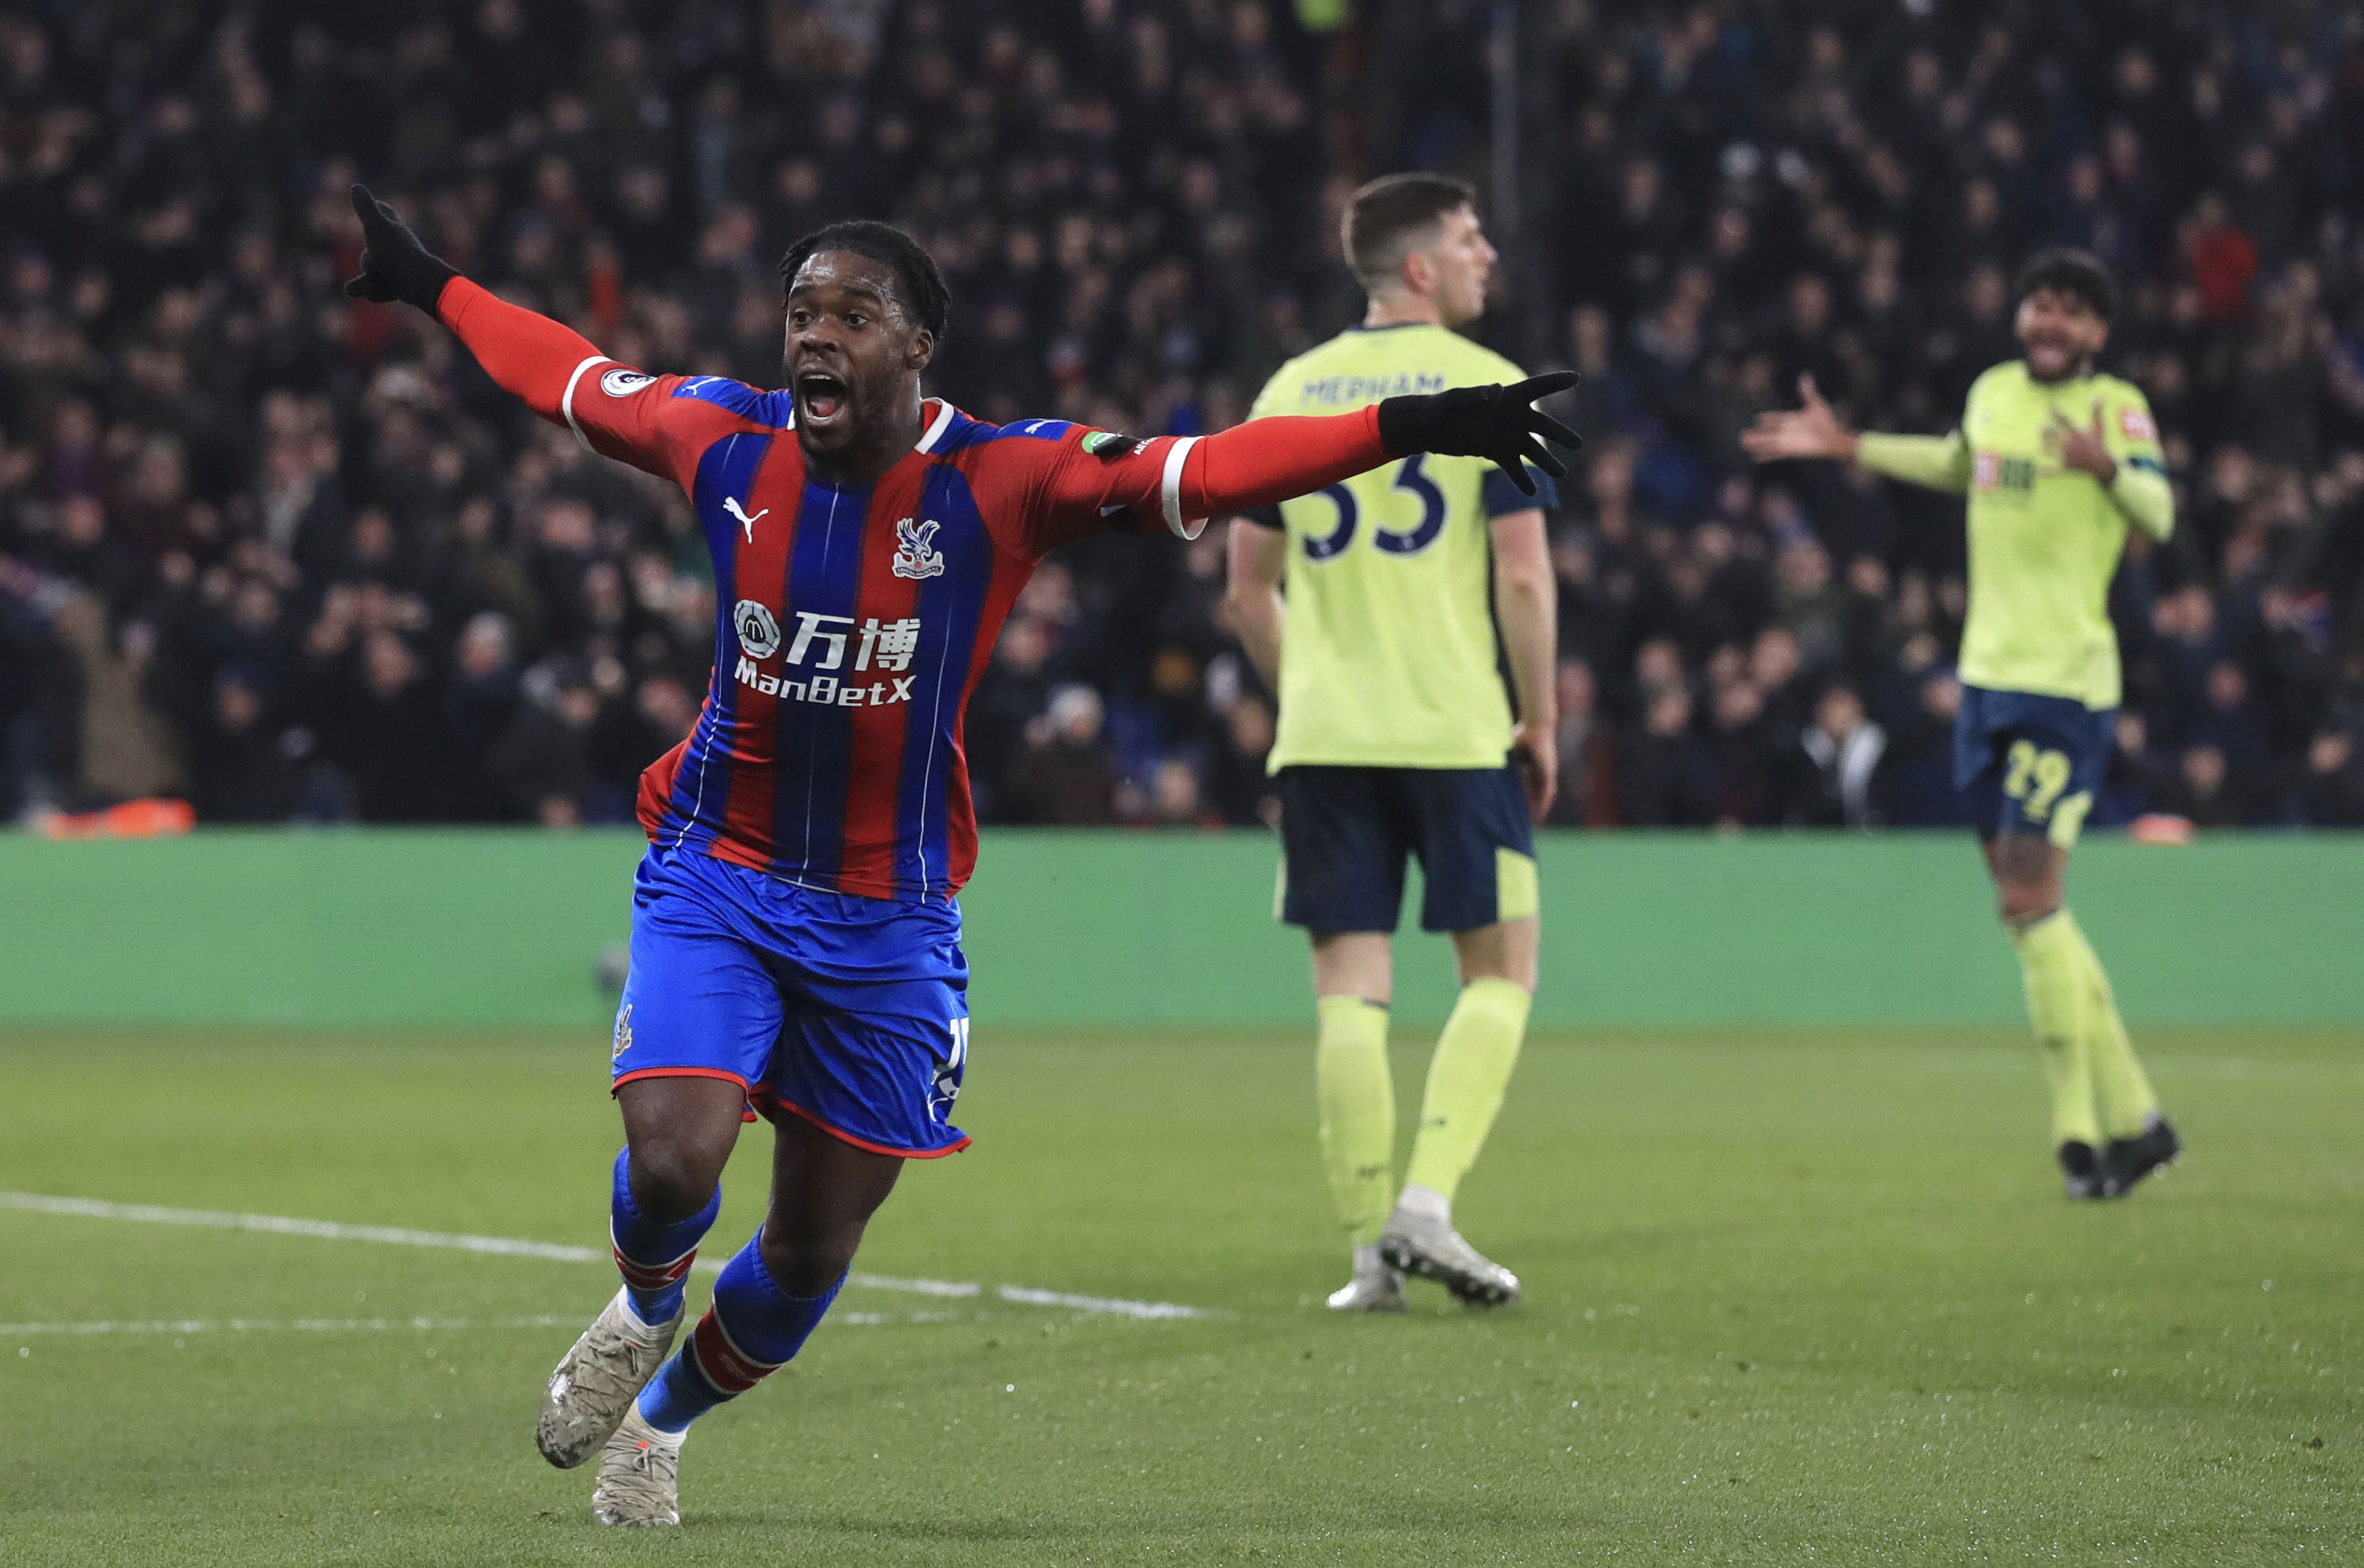 Schlupp gives 10-man Palace 1-0 win over Bournemouth in PL